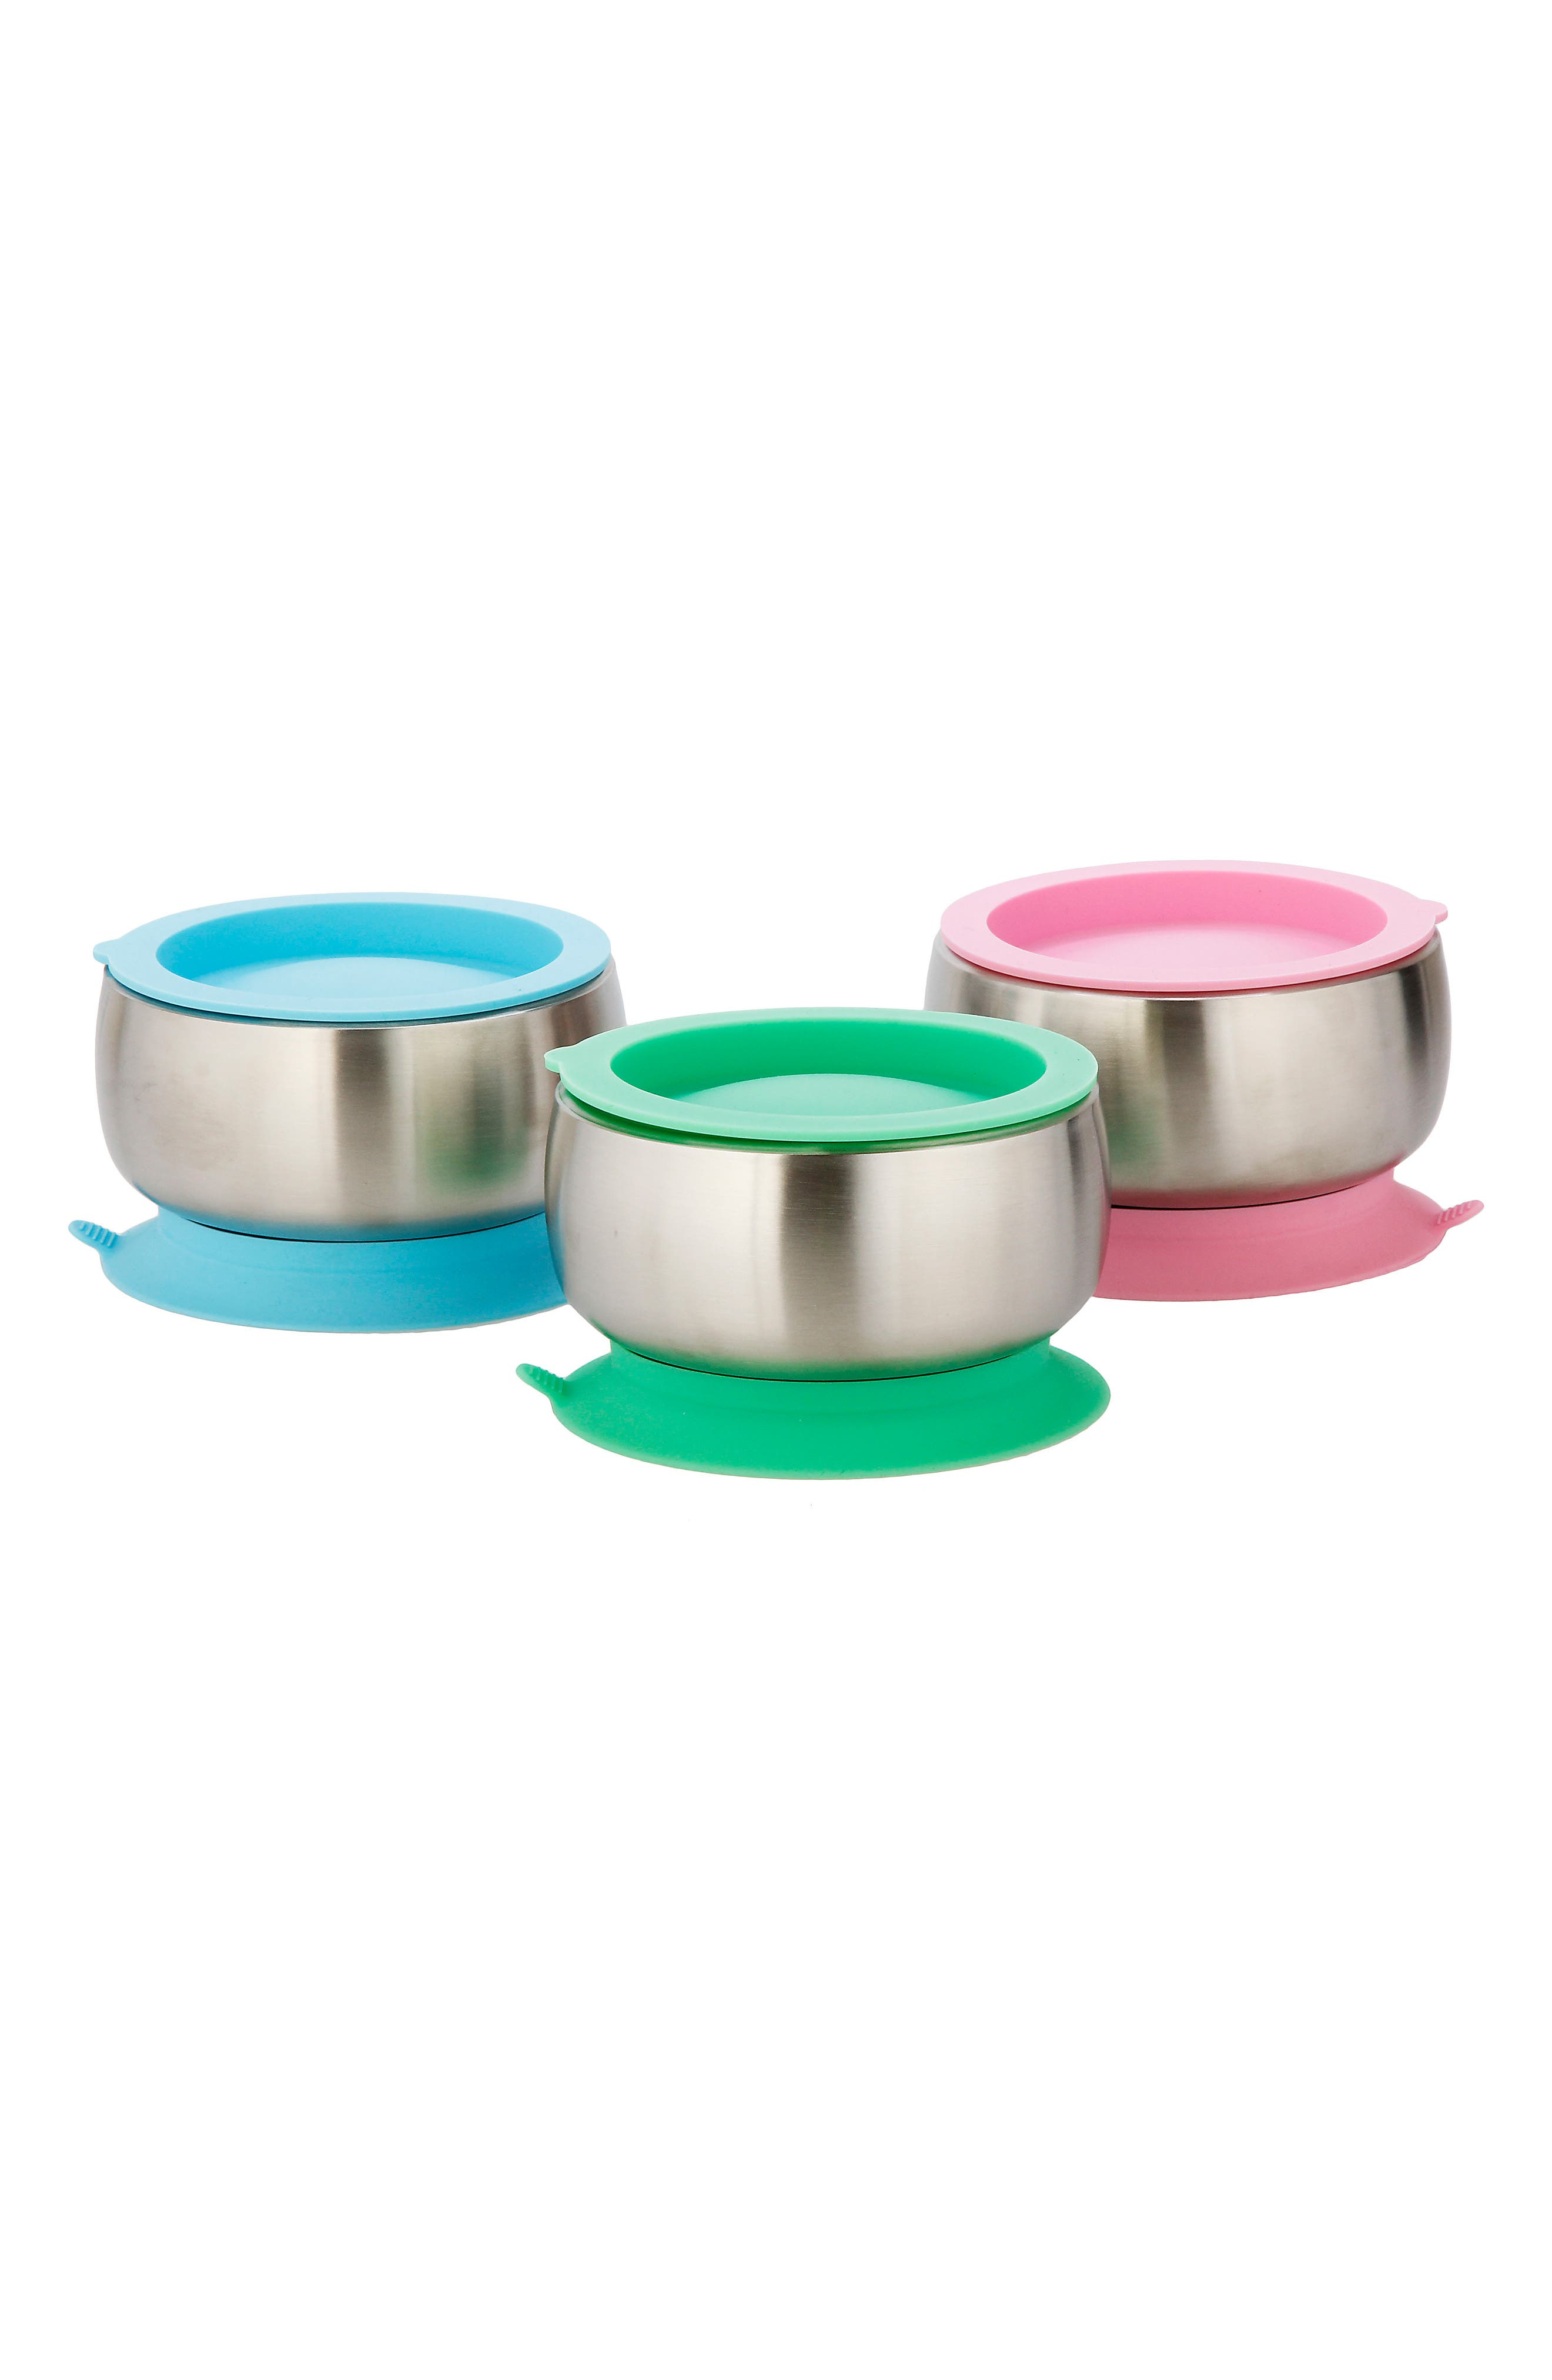 Stainless Steel Stay-Put Suction Bowl & Lid,                             Alternate thumbnail 3, color,                             Pink